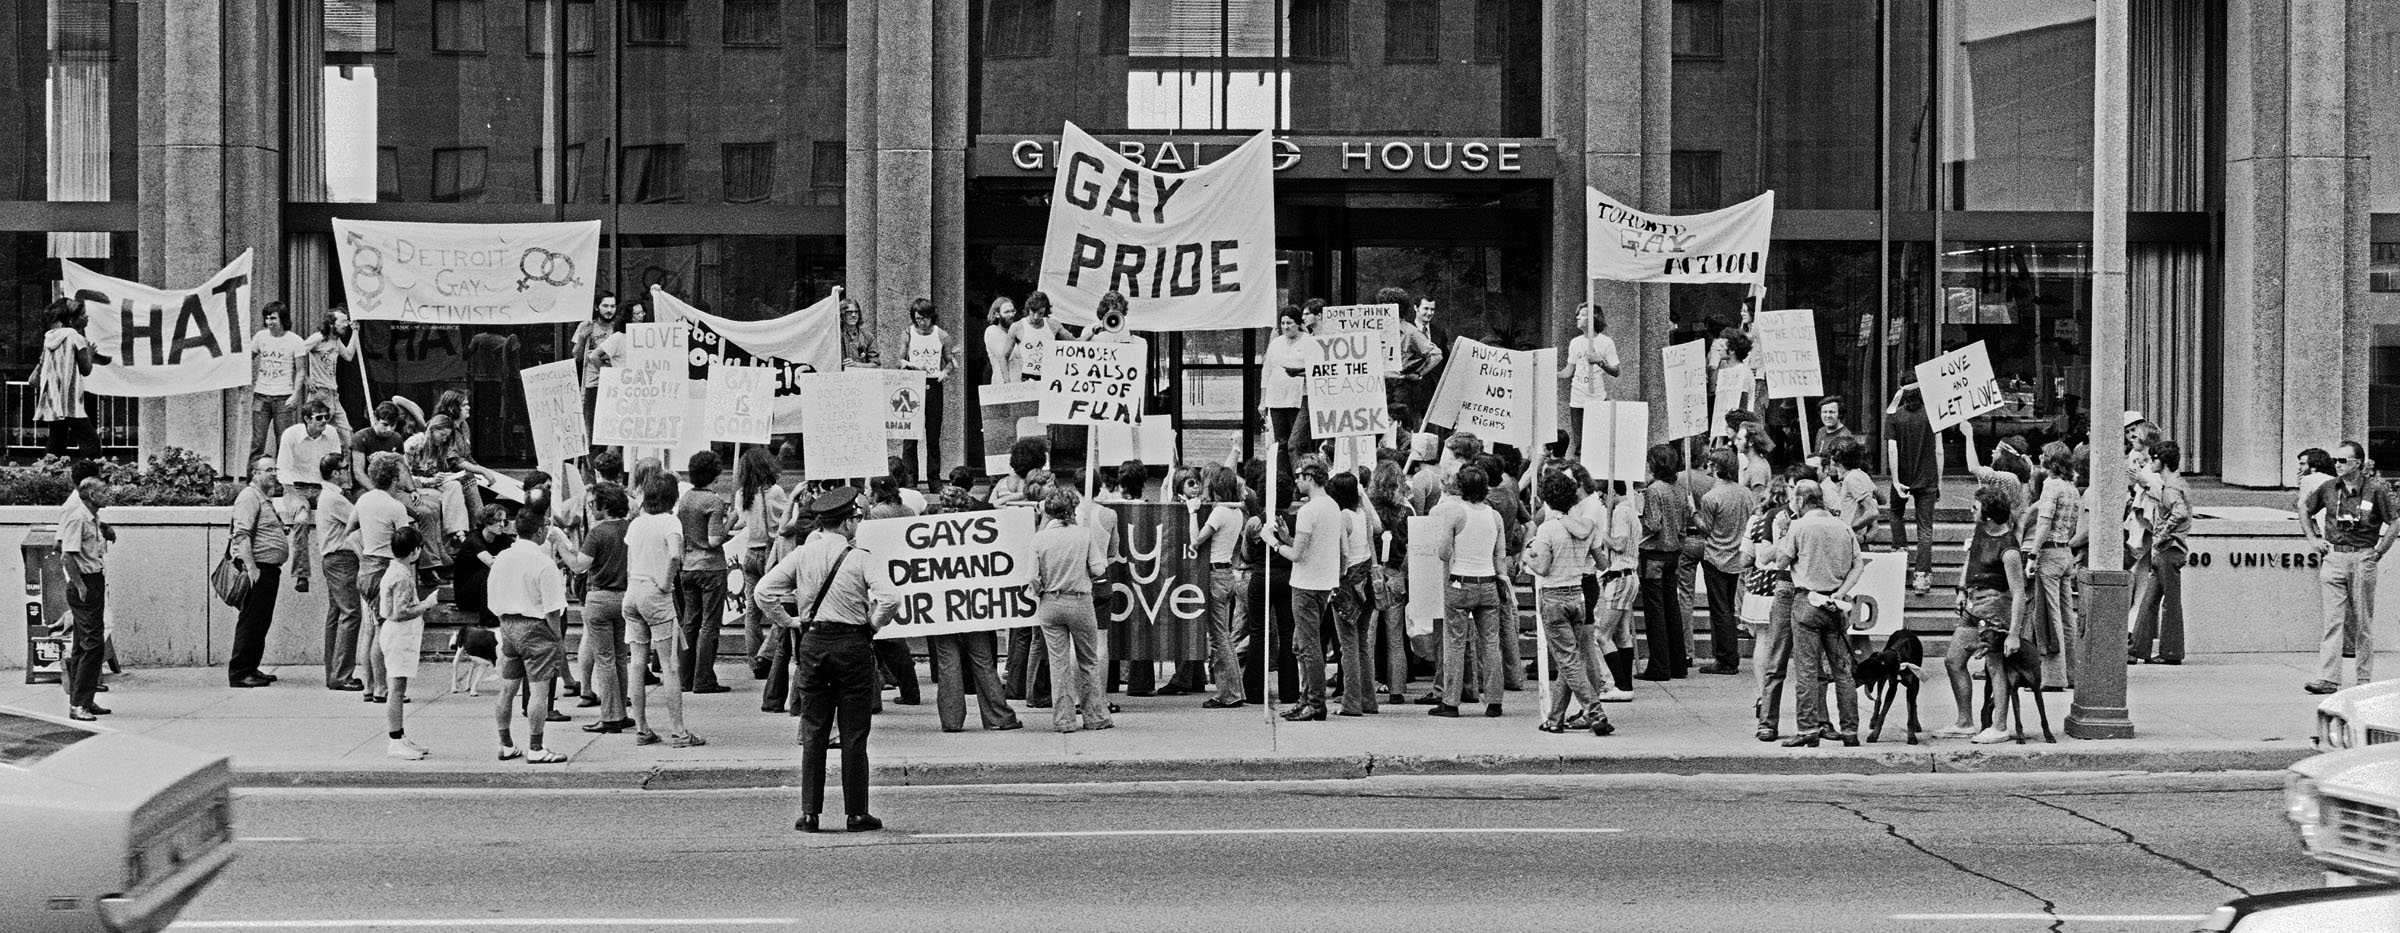 Pride March on University Ave in Toronto, 1972.